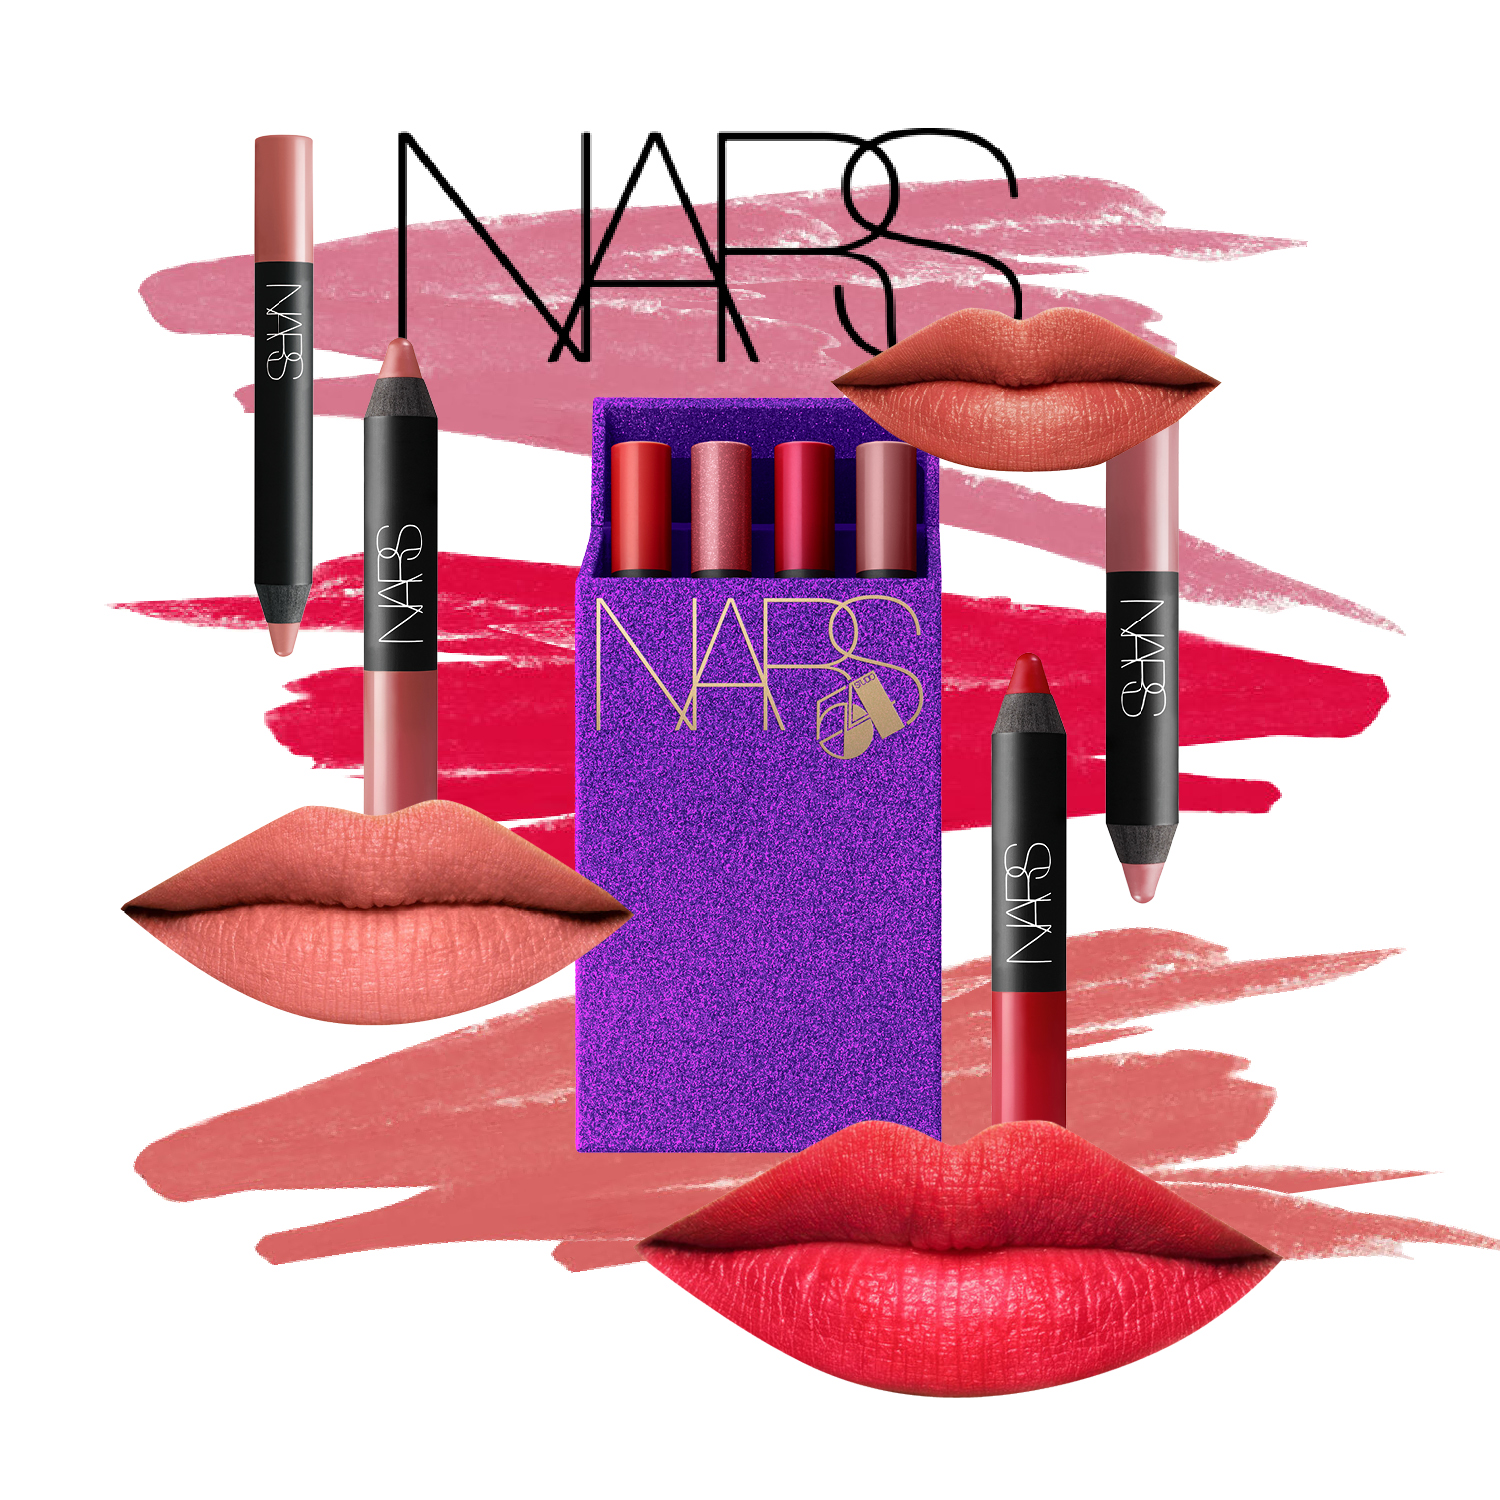 Adventsverlosung: Nars